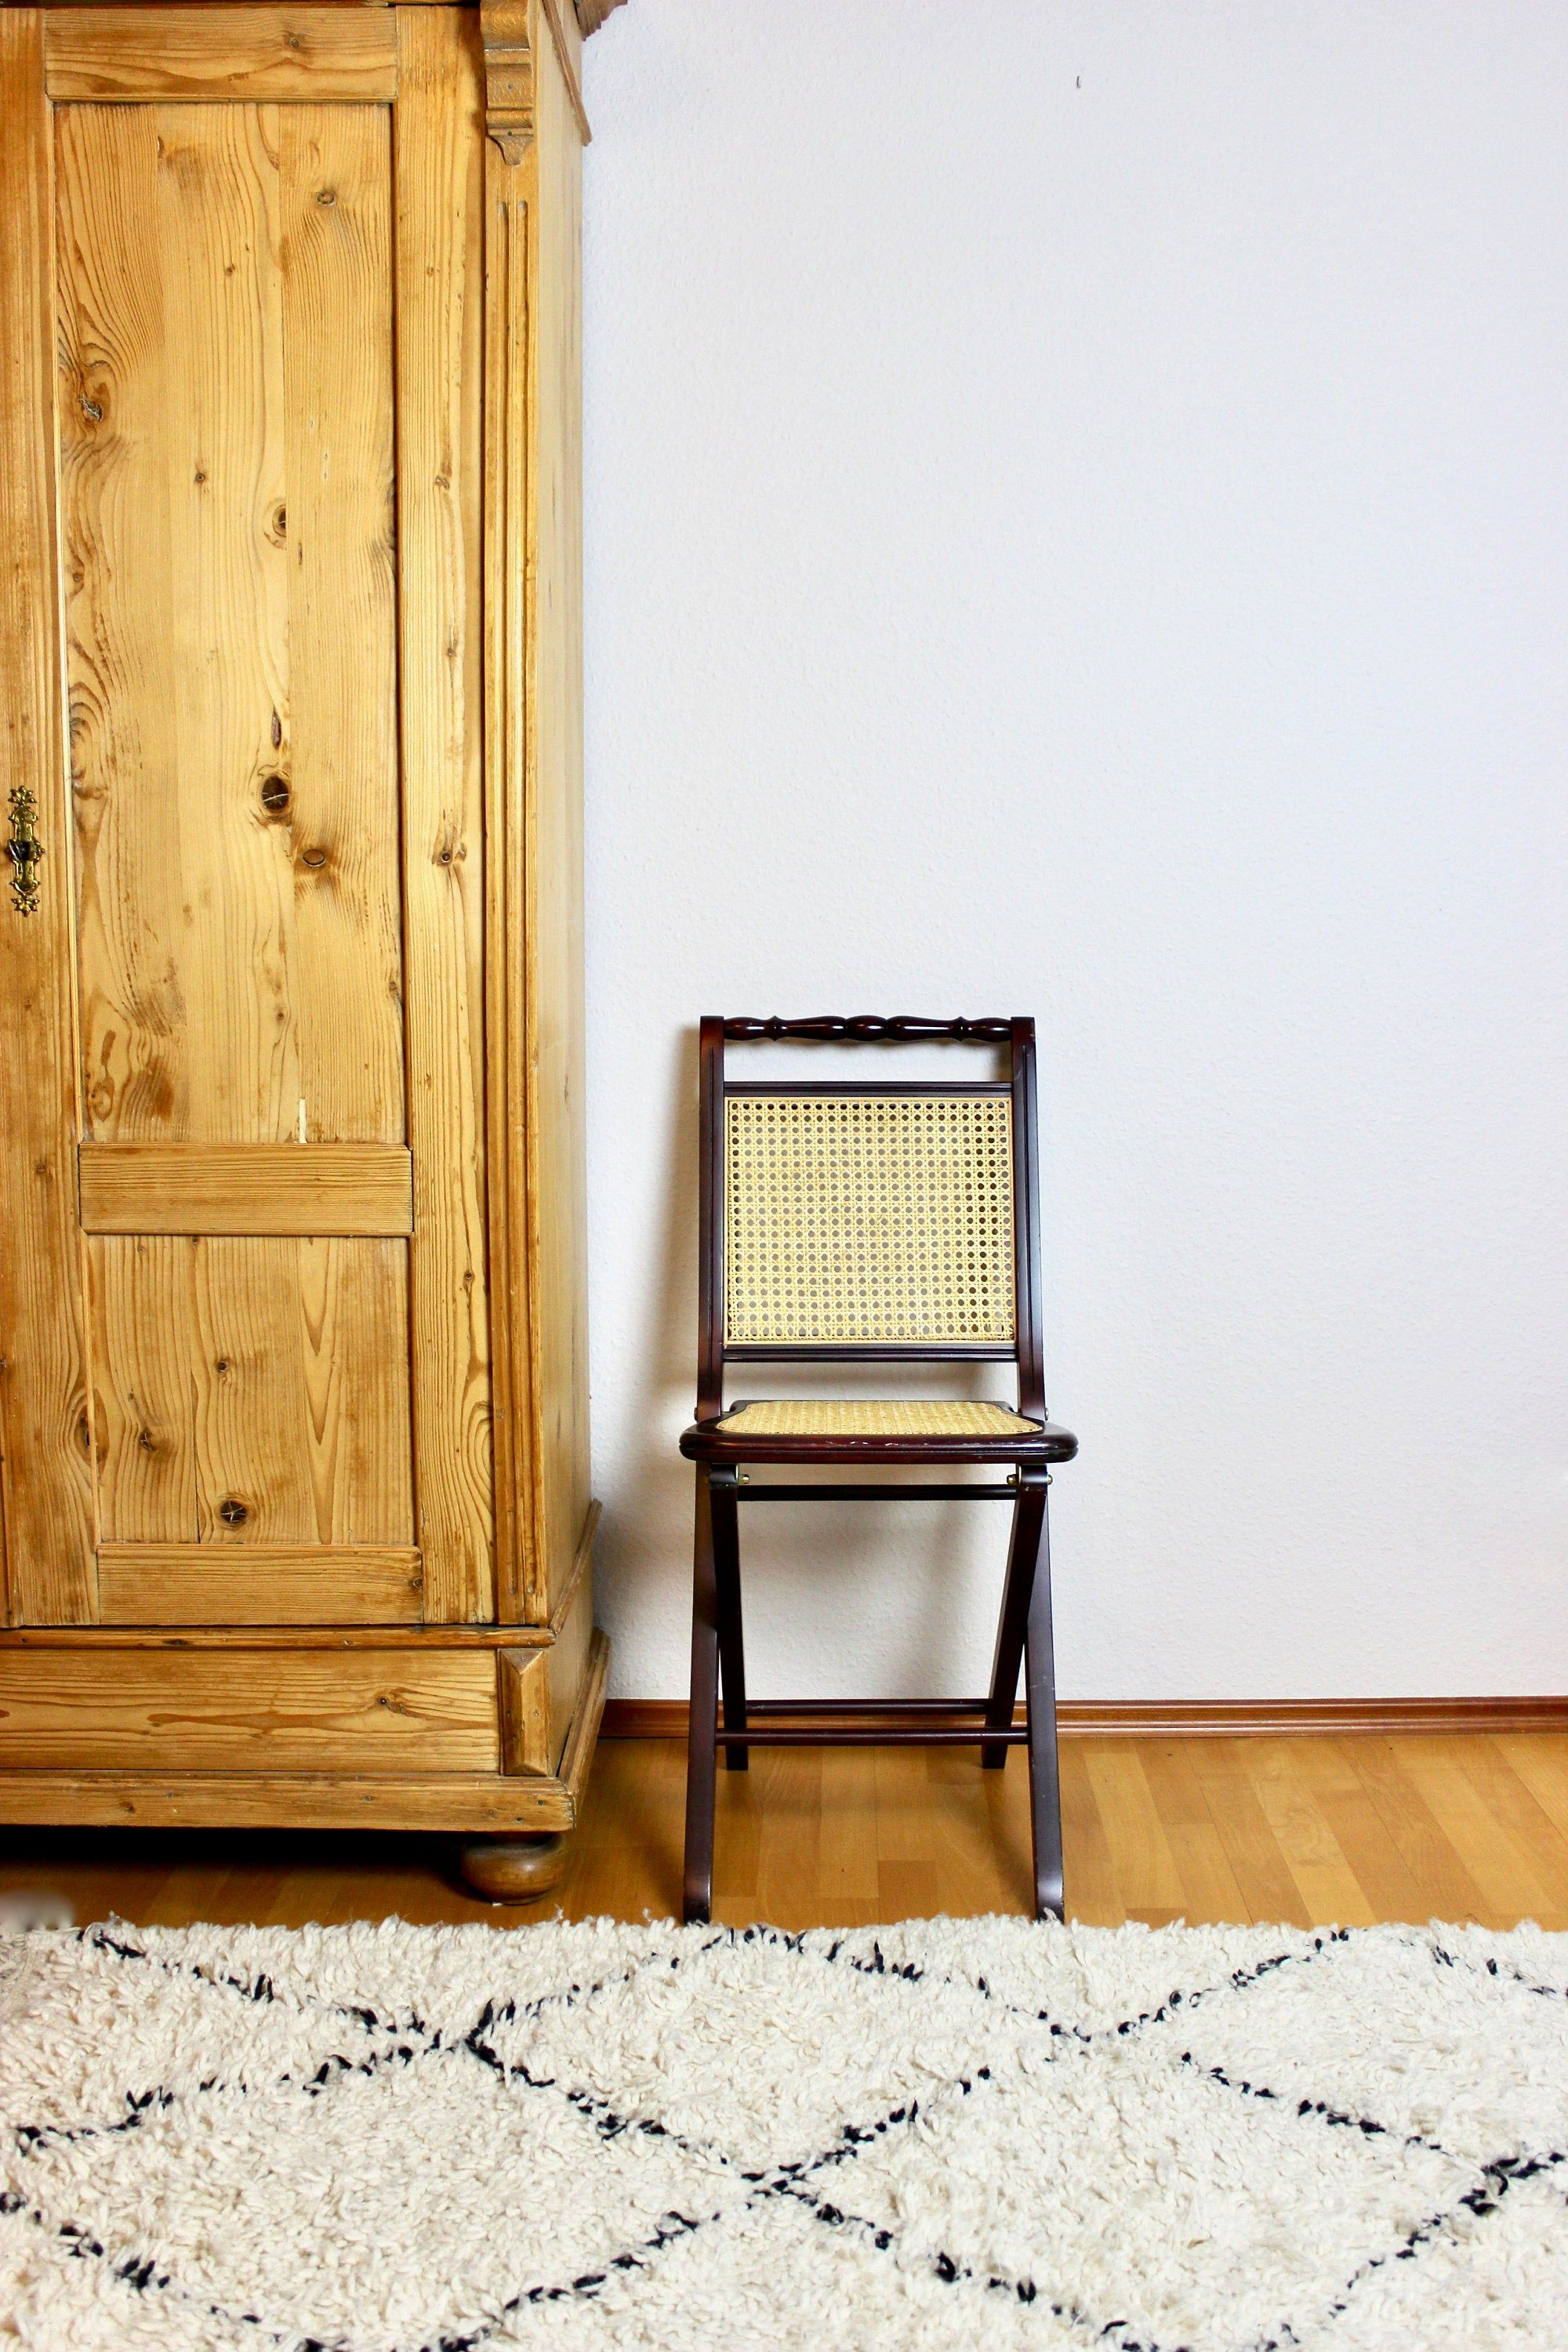 Vintage Klappstuhl Mit Wiener Geflecht Faltstuhl Stuhl Mid Century Interior In 2020 Folding Chair Mid Century Interior Chair